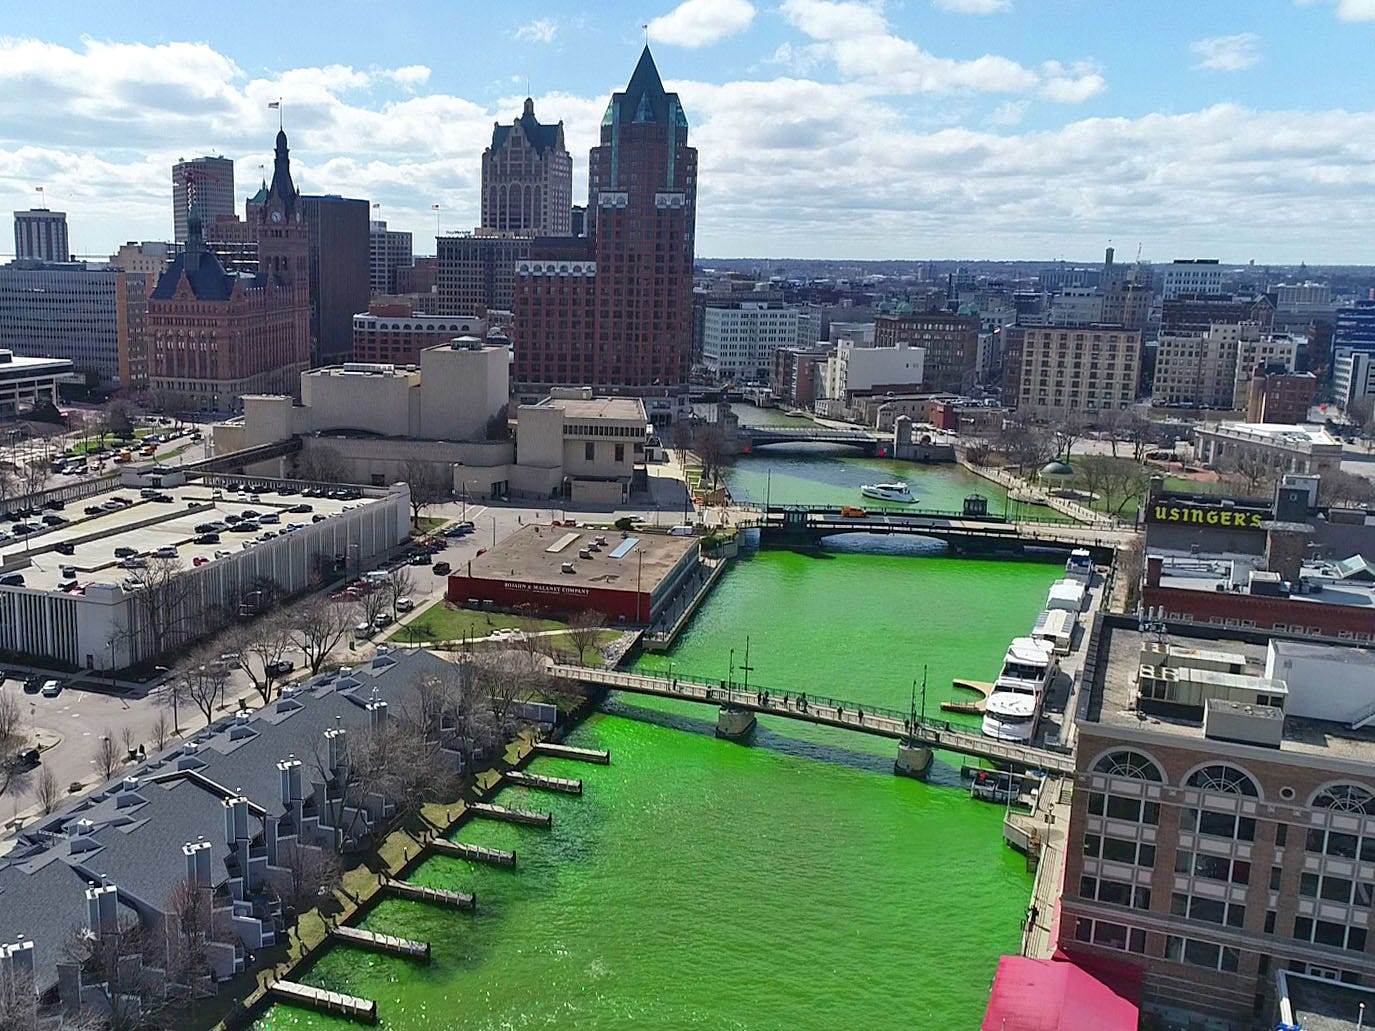 Milwaukee celebrated the start of the Milwaukee Bucks in the NBA Playoffs by dyeing the Milwaukee River green in Milwaukee on Friday, April 12, 2019. The Bucks partnered with the city and the state Department of Natural Resources to dye the river green and throw a kickoff party near Fiserv Forum.